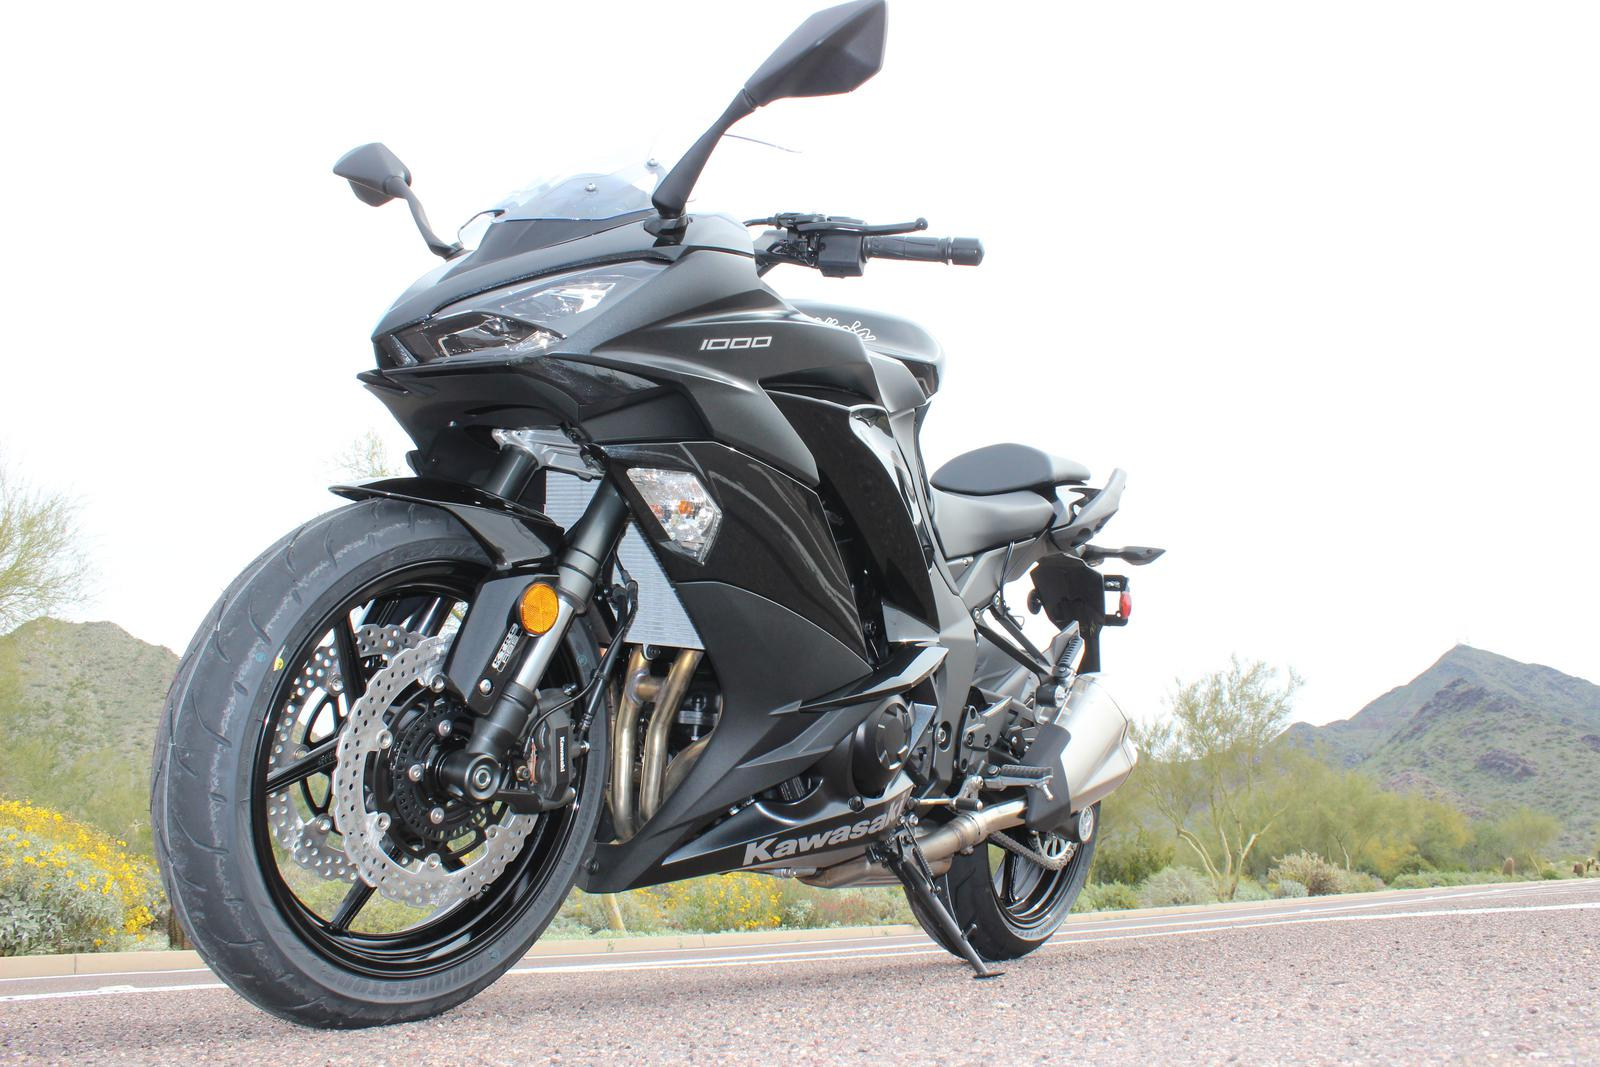 2019 Kawasaki Ninja 1000 Abs For Sale In Scottsdale Az Go Az